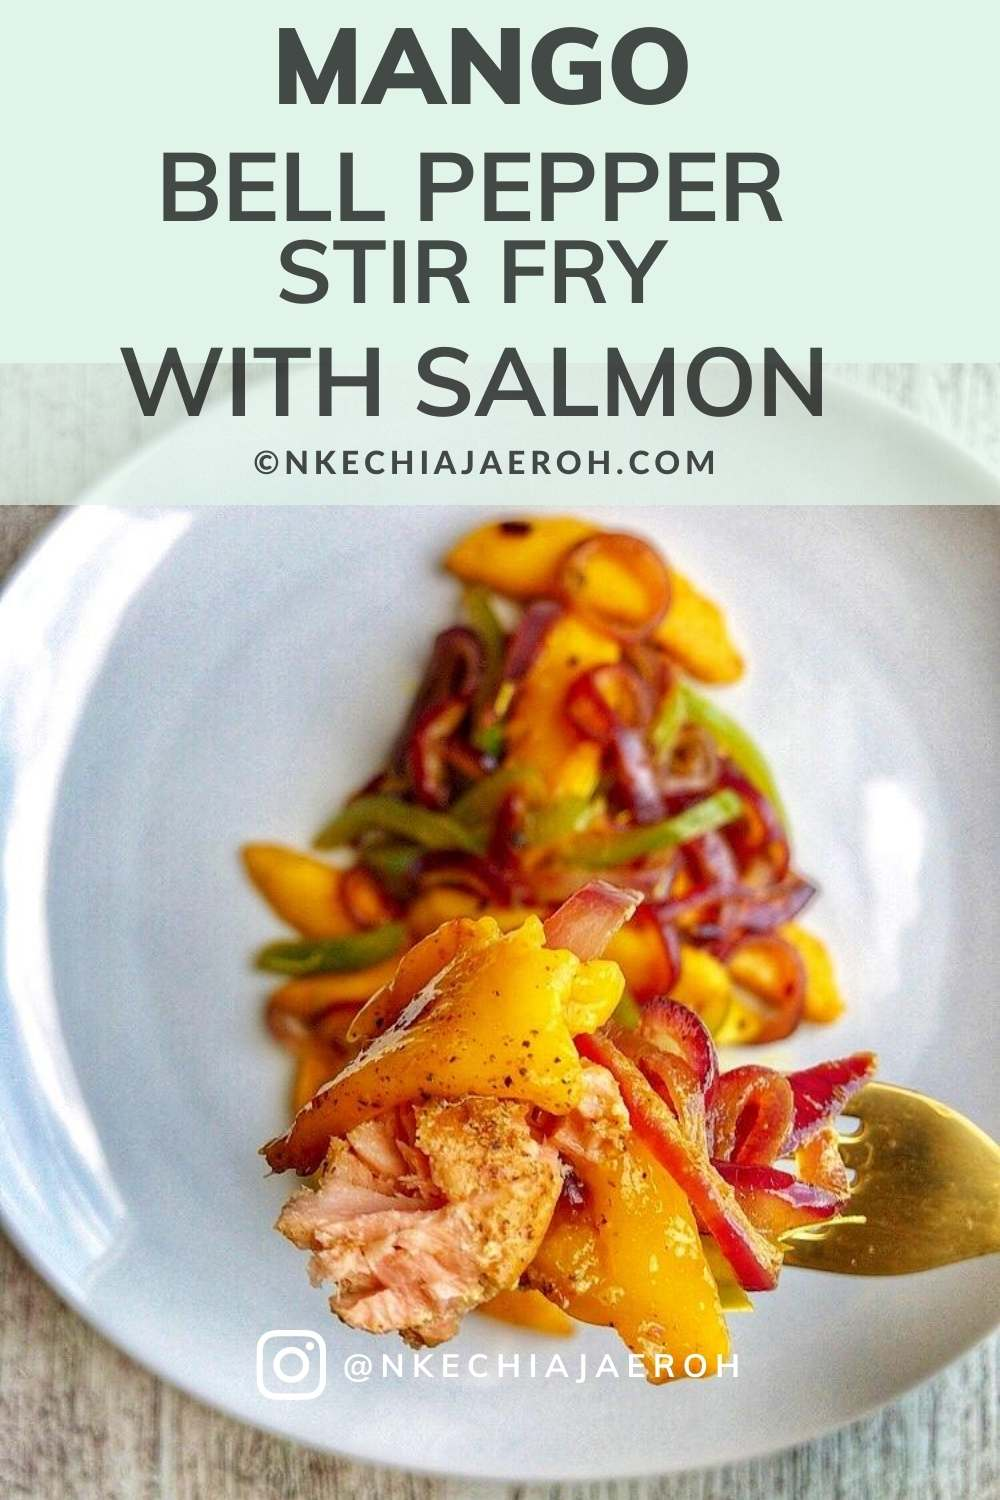 The best mango stir-fry recipe! This healthy vegetarian mango bell pepper stir fry with salmon cooks in 20 minutes or less. A tasty mango dish that hit every spot – healthy, easy, juicy, sweet, savory, colorful, flavorful, and insanely delicious! A sure winner on the dinner table! This dish is a must-try! This easy peasy lunch/dinner mango stir fry with salmon will leave your guests impressed! This is a perfect summer recipe! #salmon #mango #stirfry #peppers #dinner #healthy